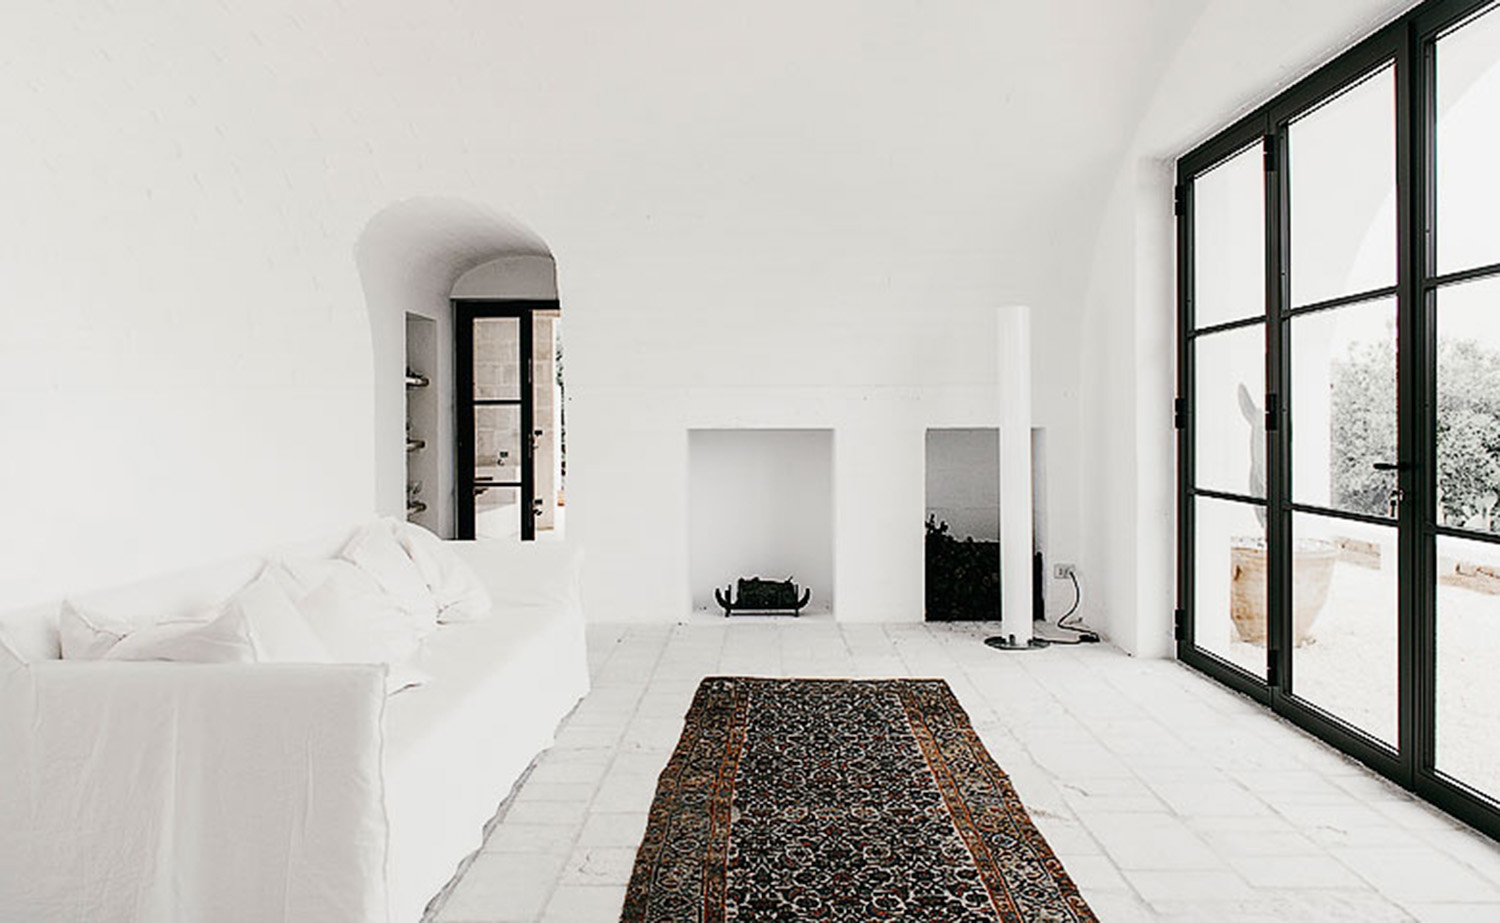 Holiday home for rent: Masseria Moroseta in Puglia, which sleeps up to 8